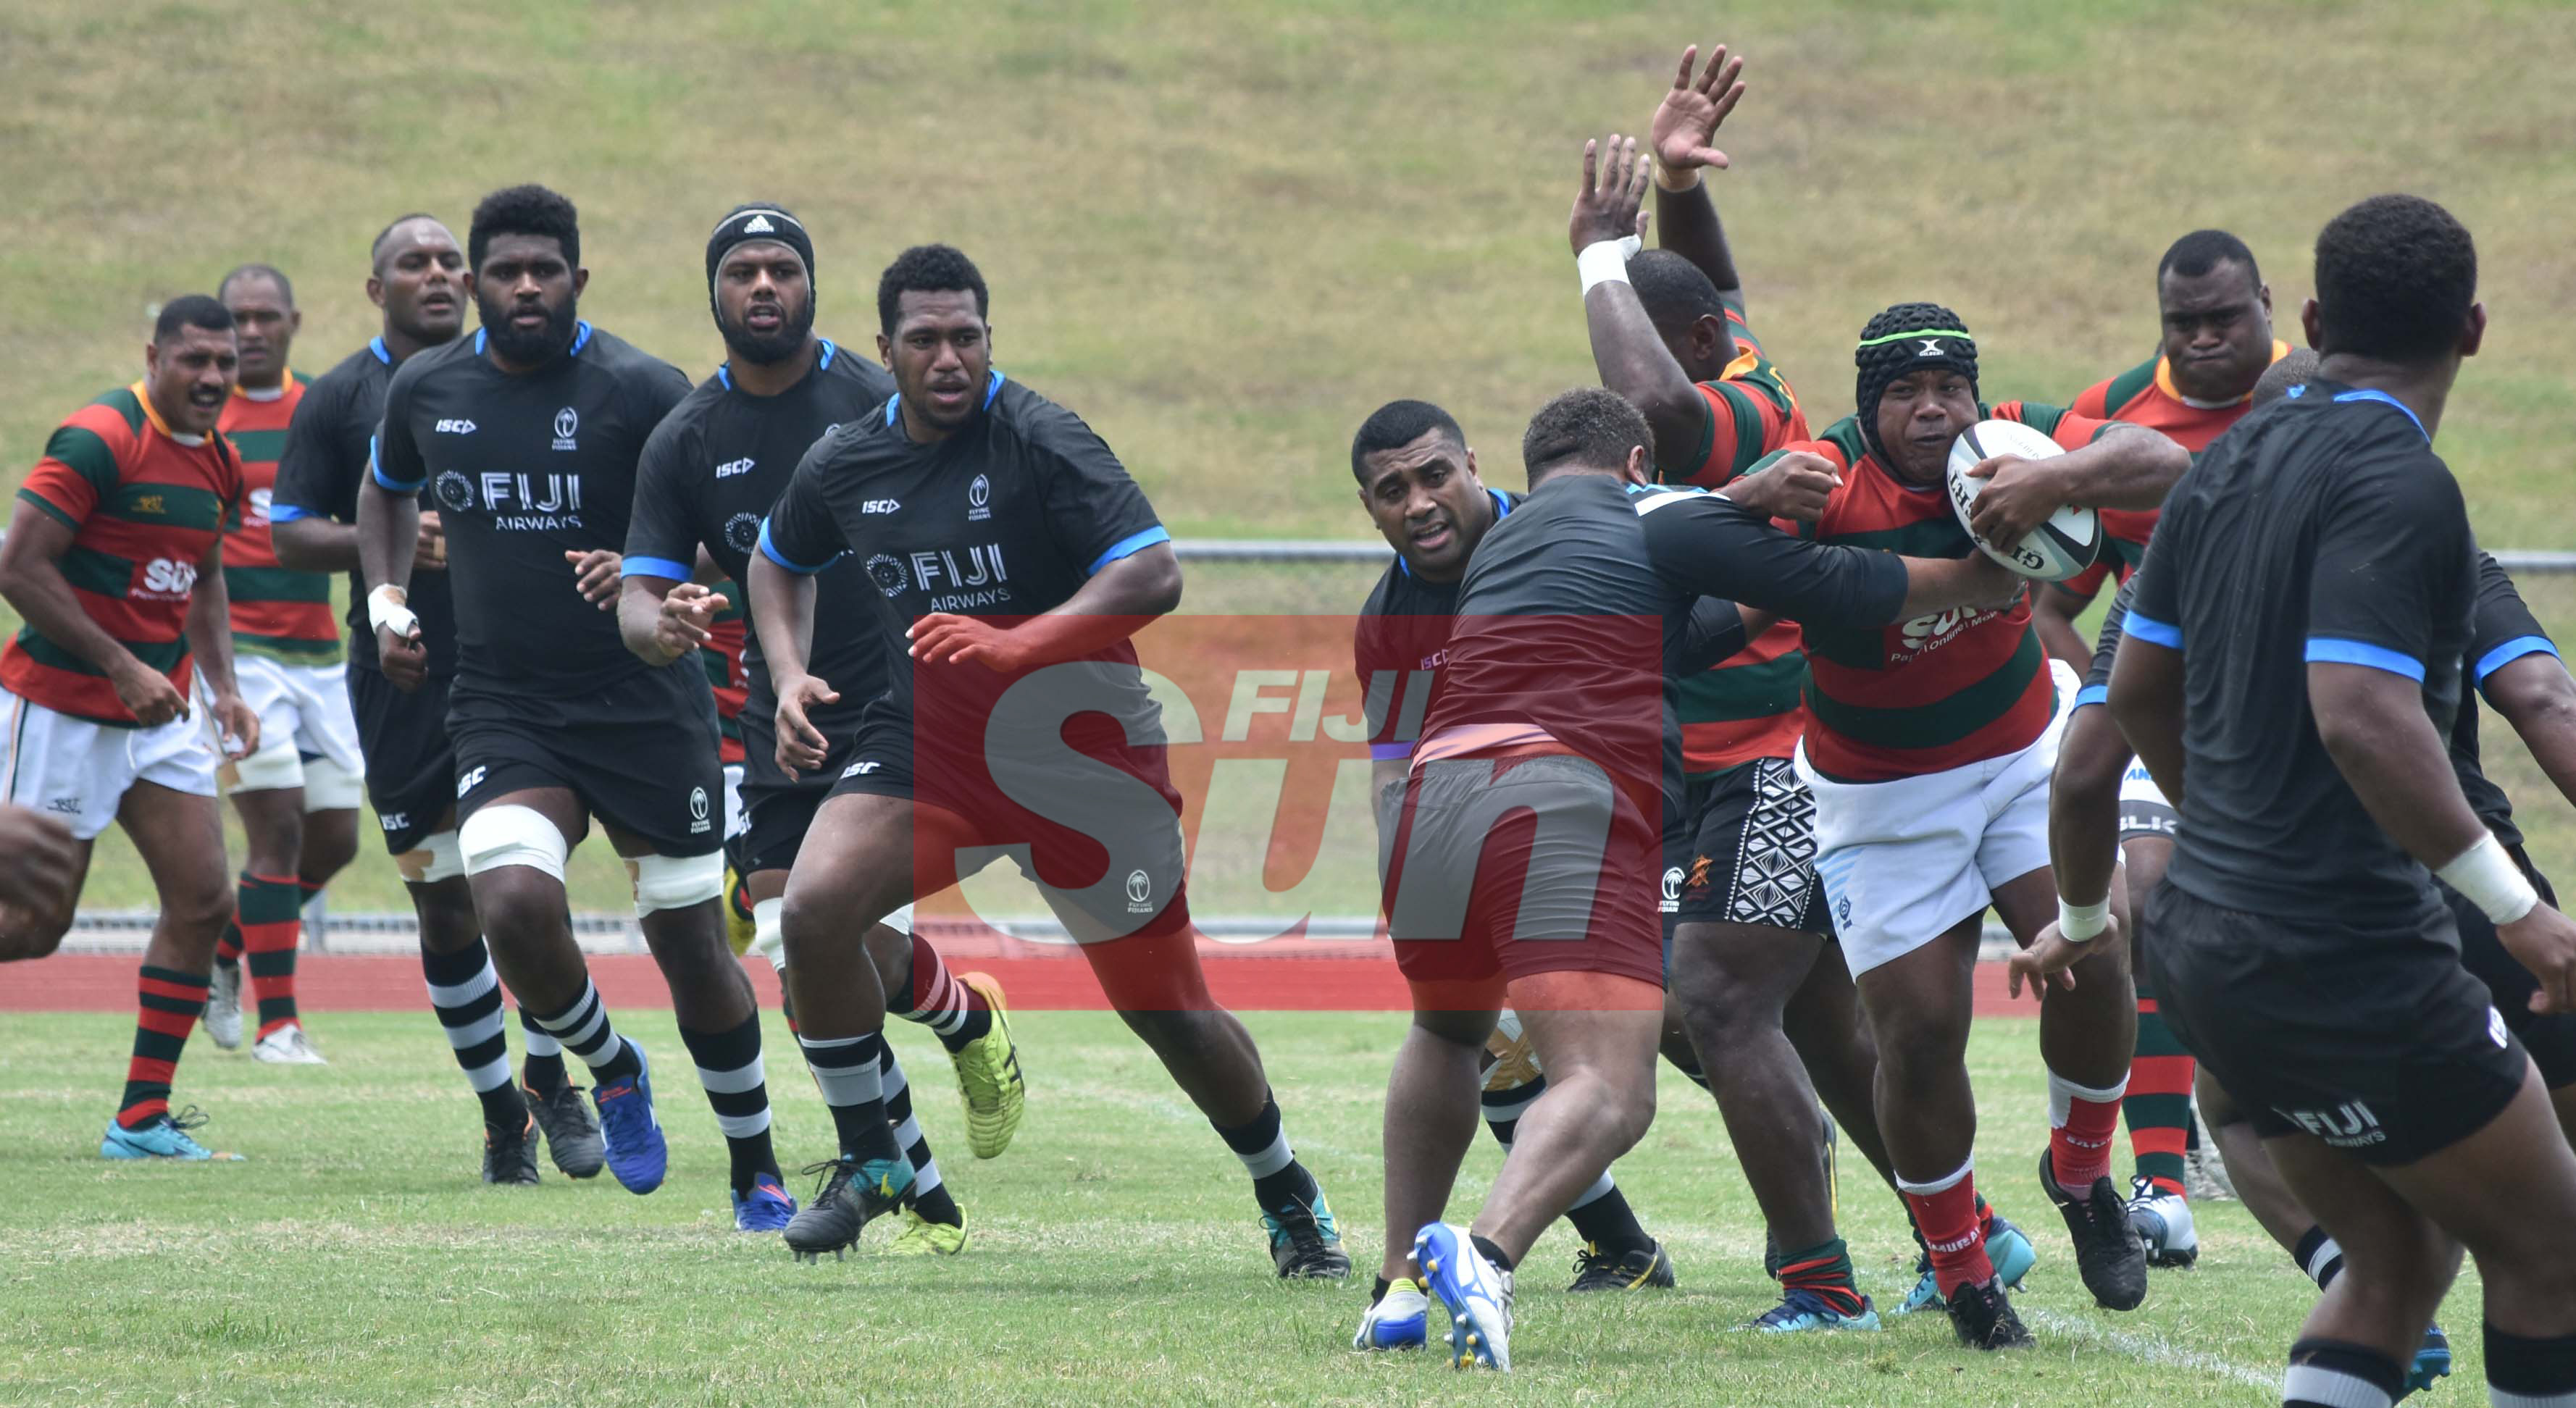 Flying Fijians defends against RFMF team during training at the Churchill park, Lautoka yesterday. Photo: WAISEA NASOKIA